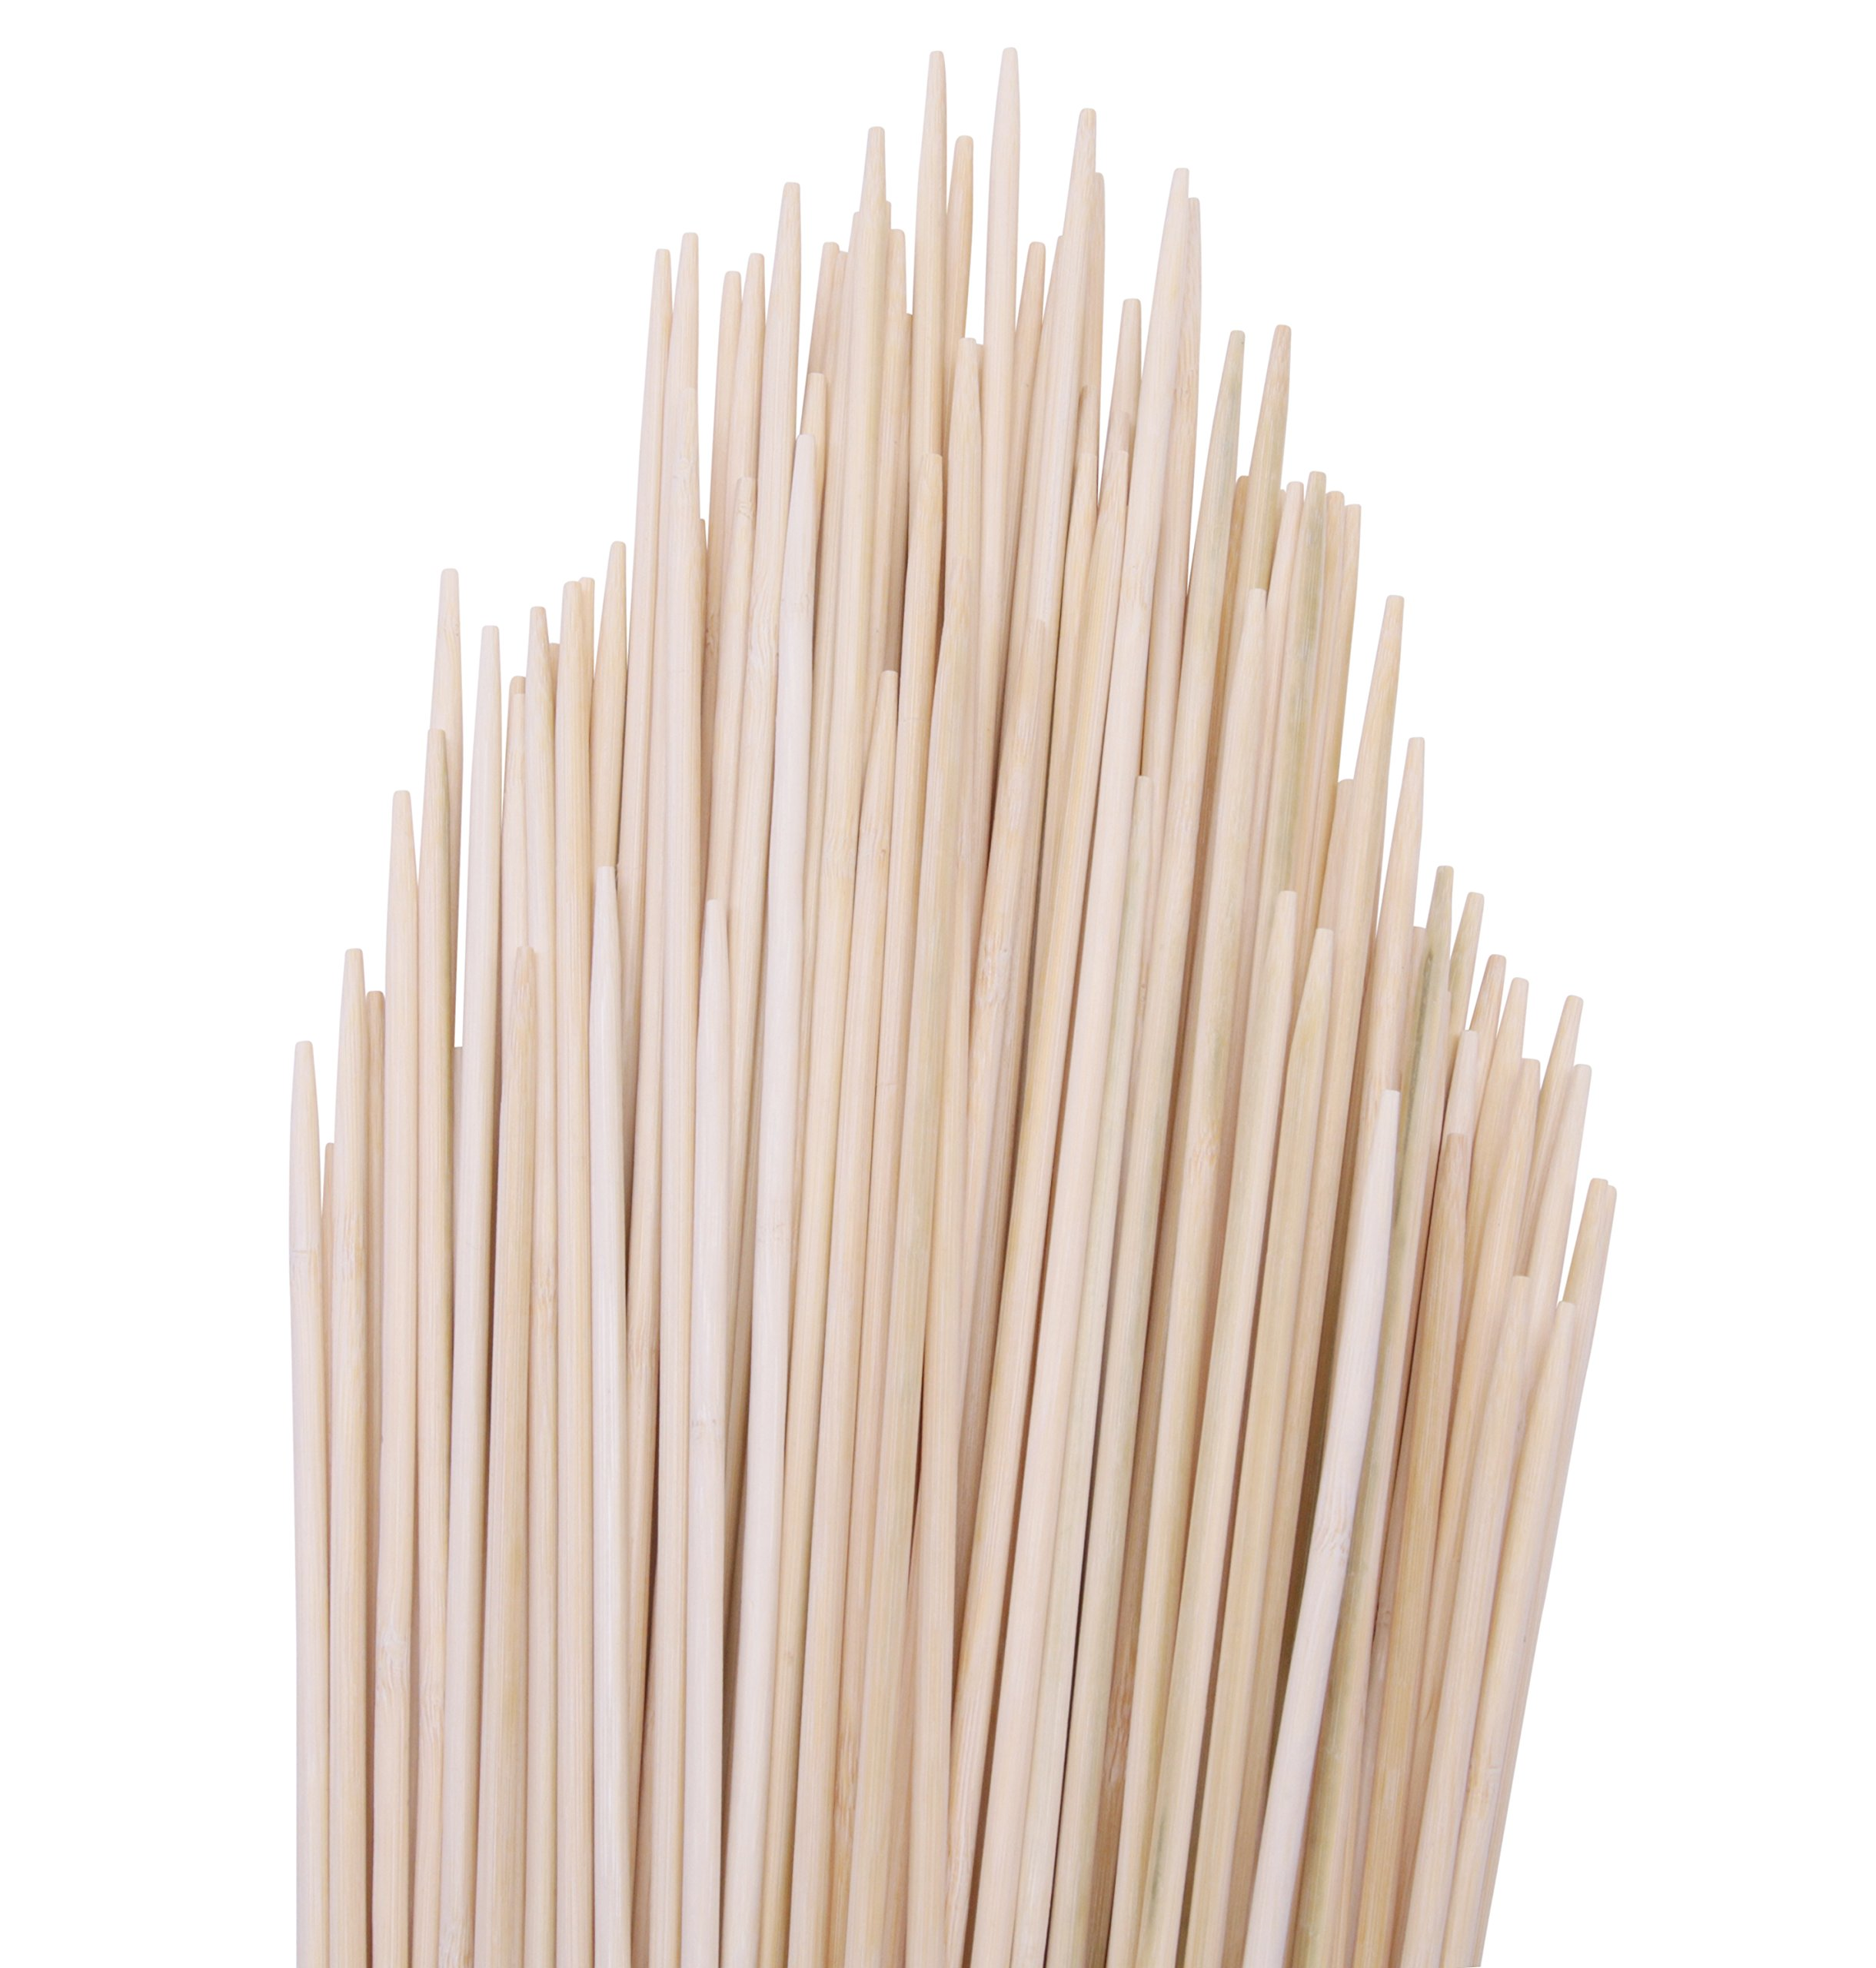 Wild Hearts Extra Long Natural Bamboo Marshmallow S'mores Roasting Sticks 36 inch x 5mm, 110 pack by Wild Hearts